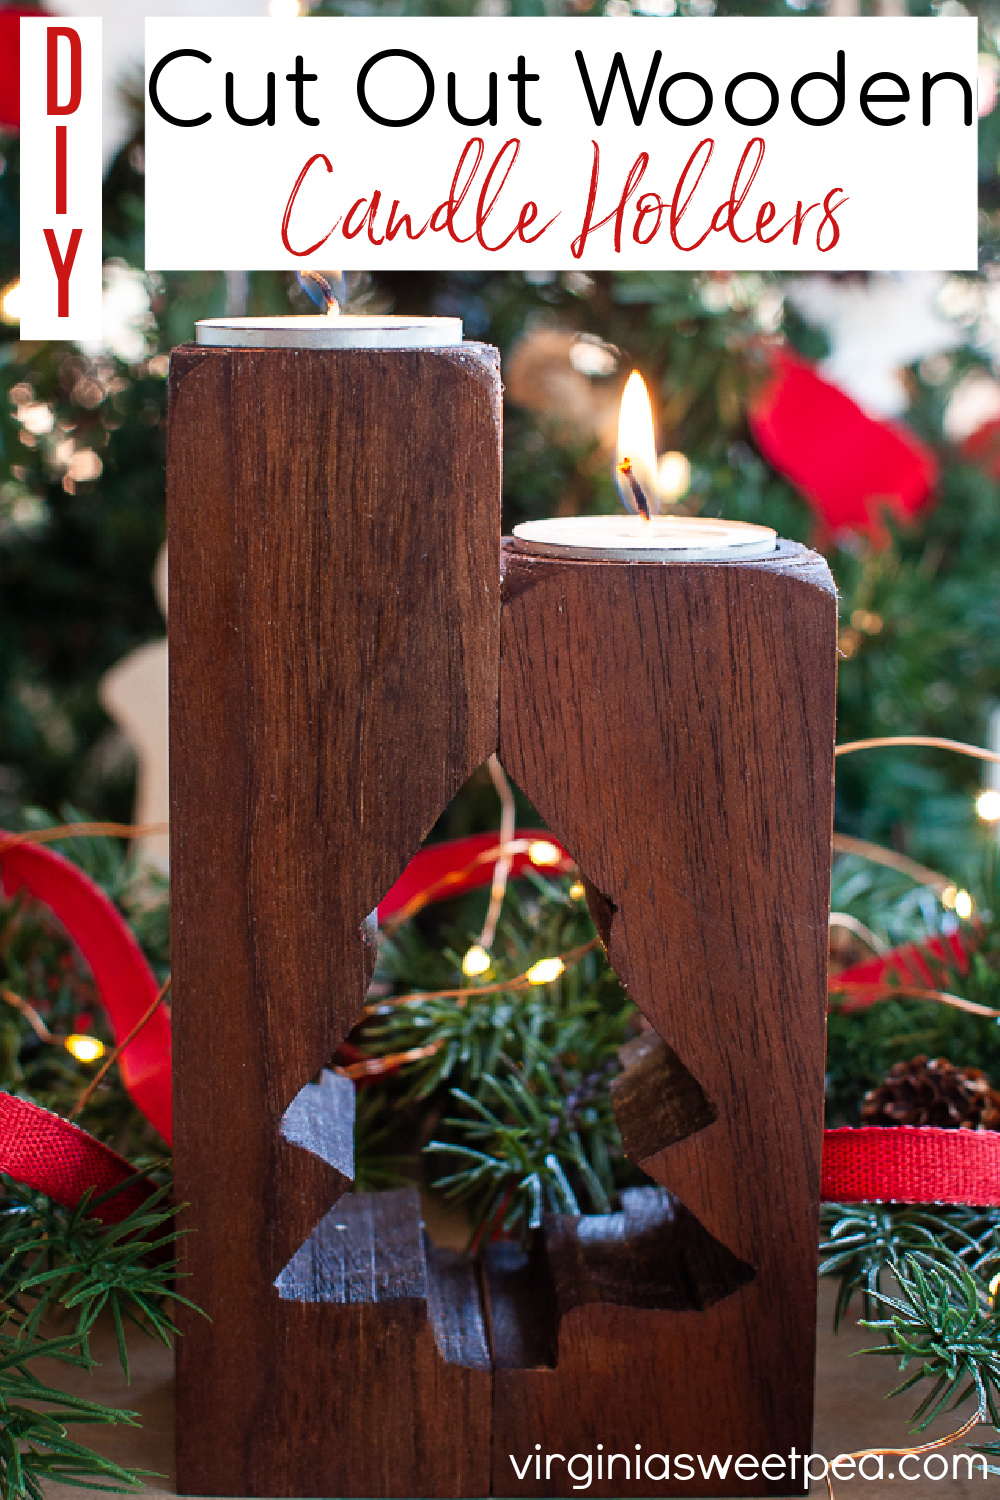 DIY Cut Out Wooden Candle Holder - This wooden candle holder was made using an upcycled table leg.  Get directions to make it plus directions for making with new wood. This project makes a great gift!   #diycandleholder #christmascandleholder  via @spaula